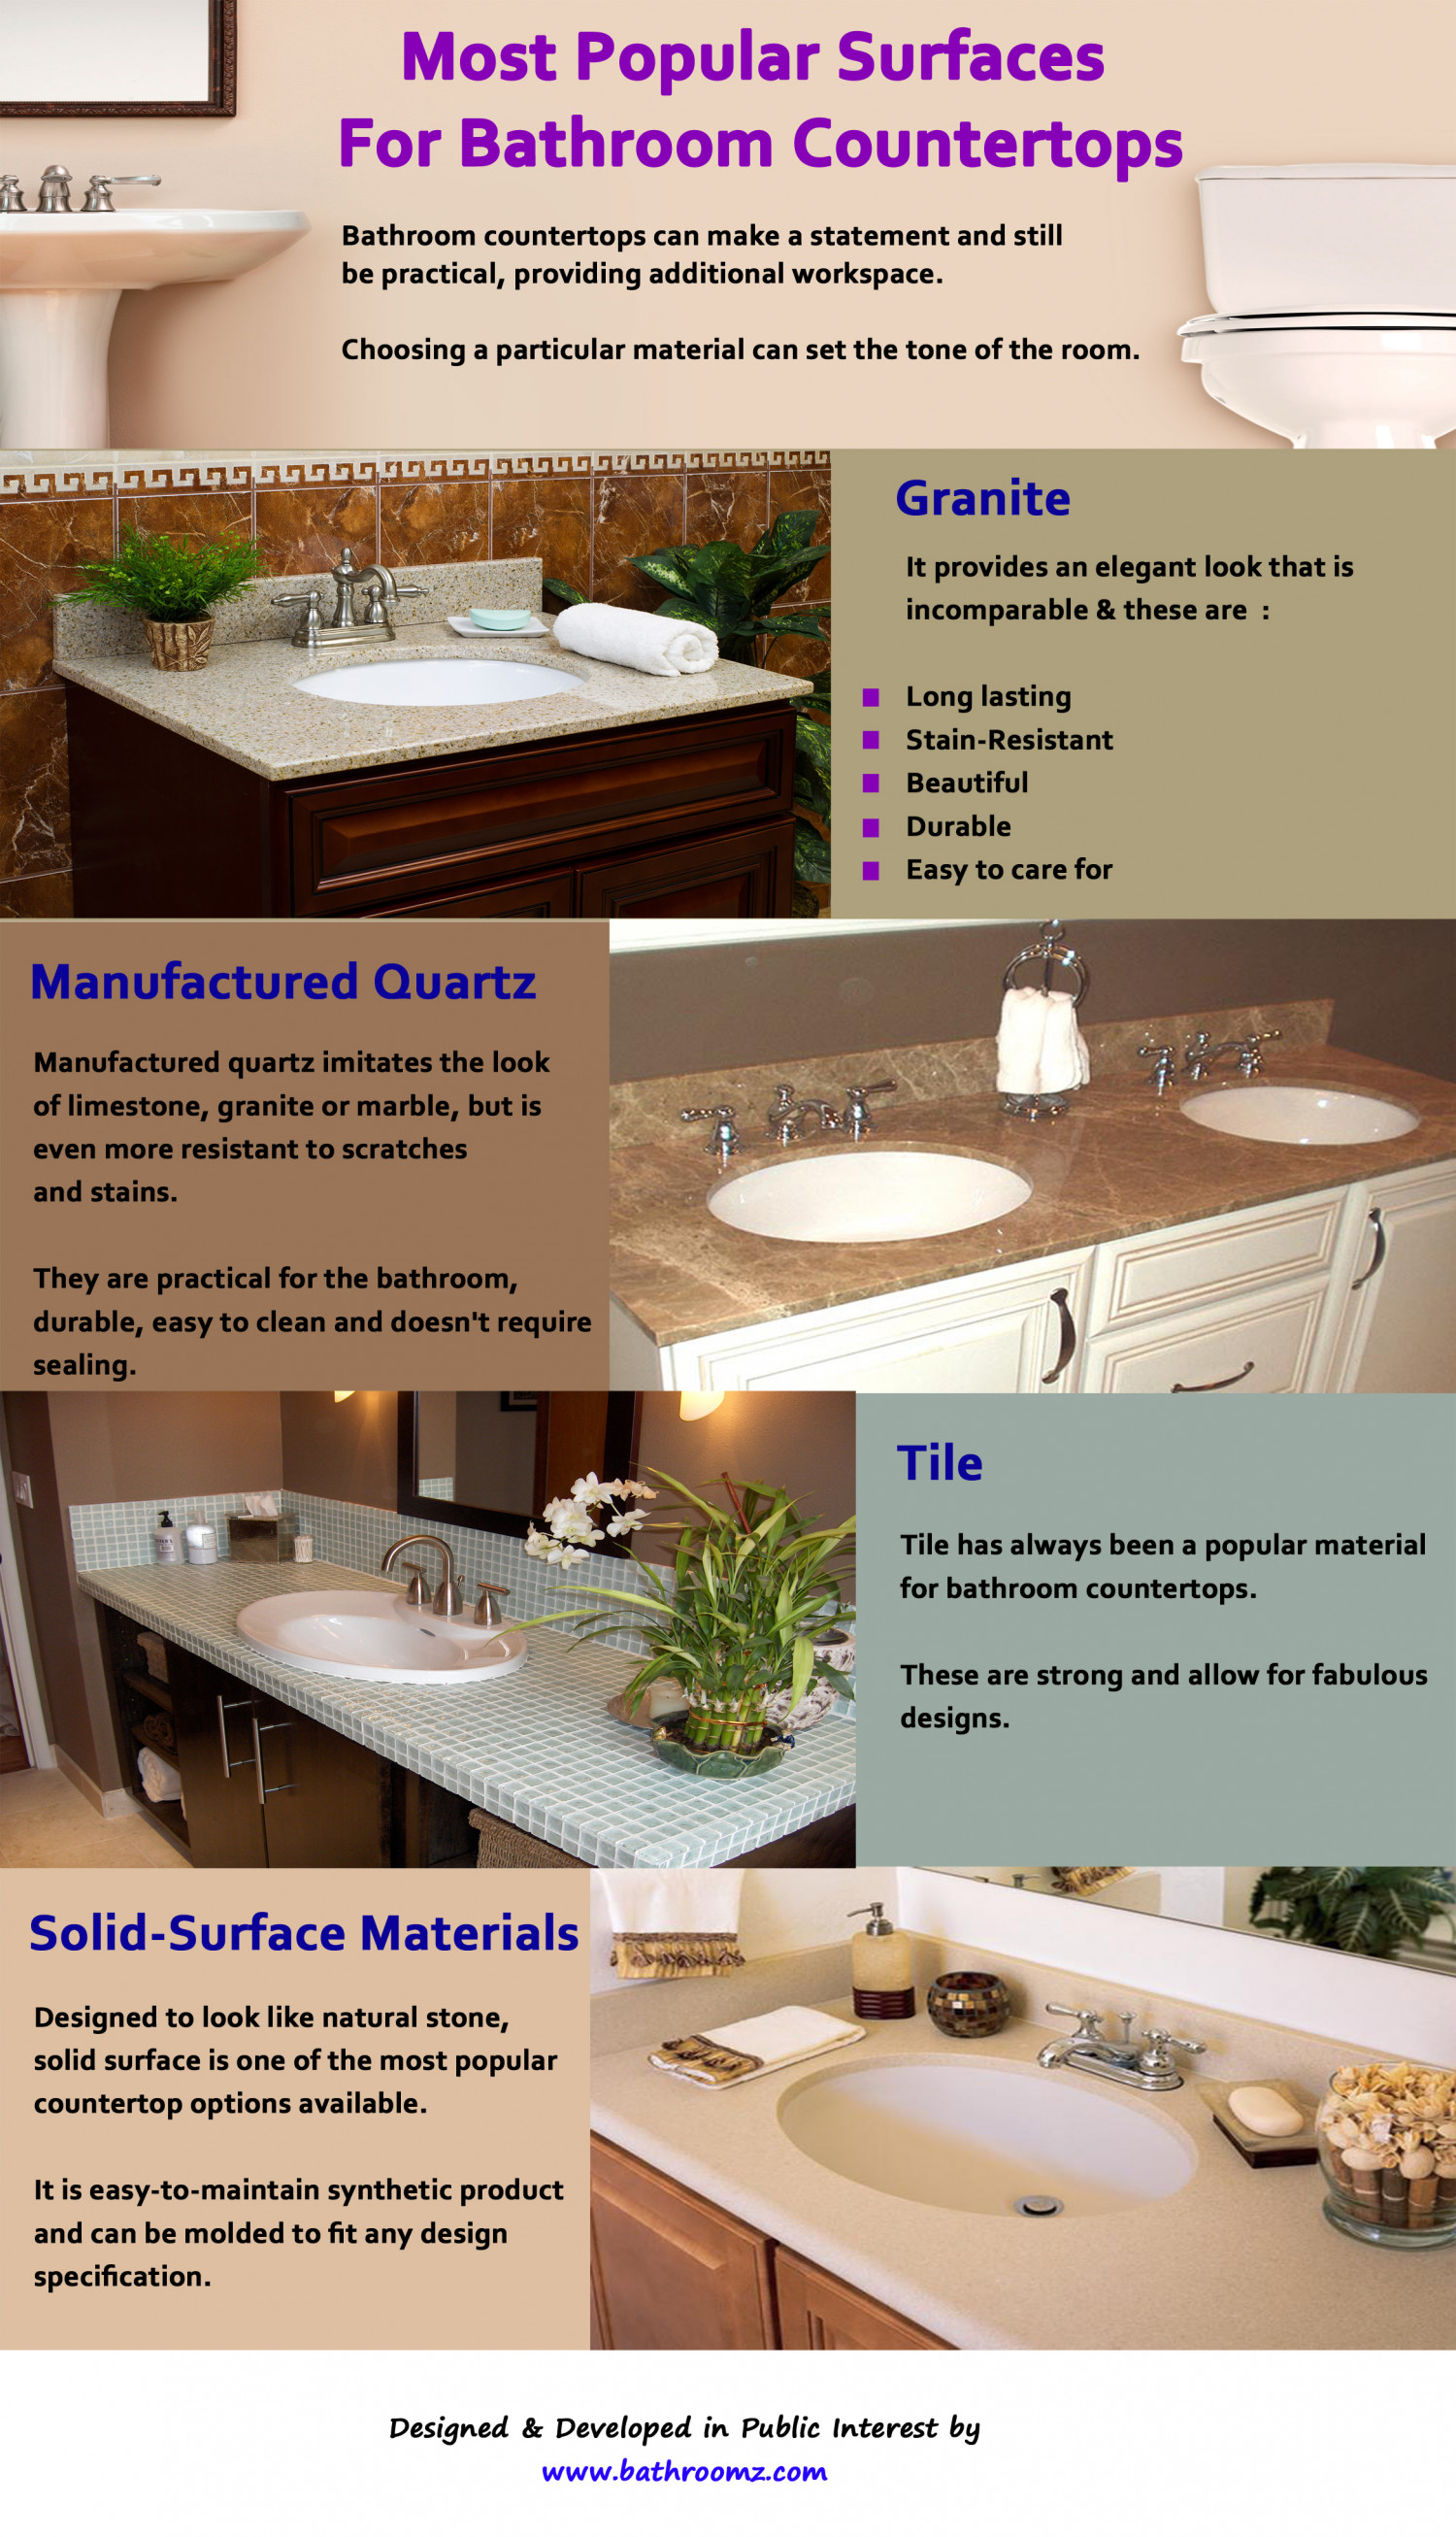 Types of Bathroom Countertops Infographic